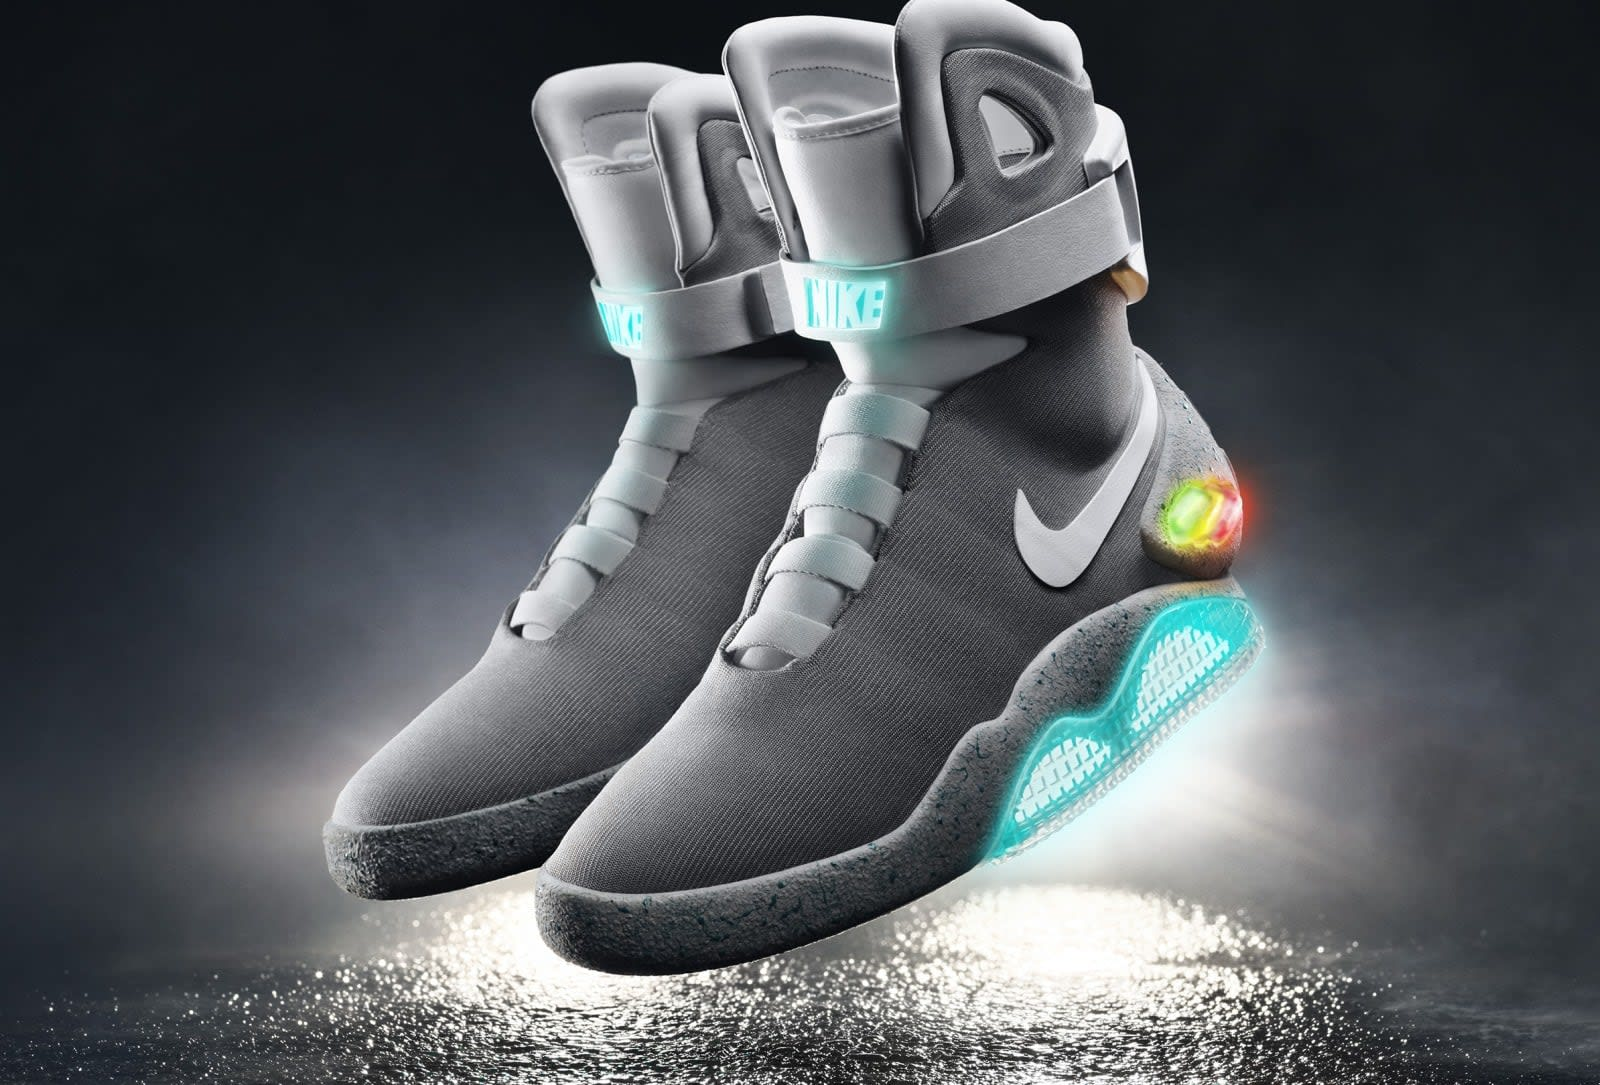 c77be81d632d Nike s first self-lacing basketball shoes go on sale in 2019 for  350